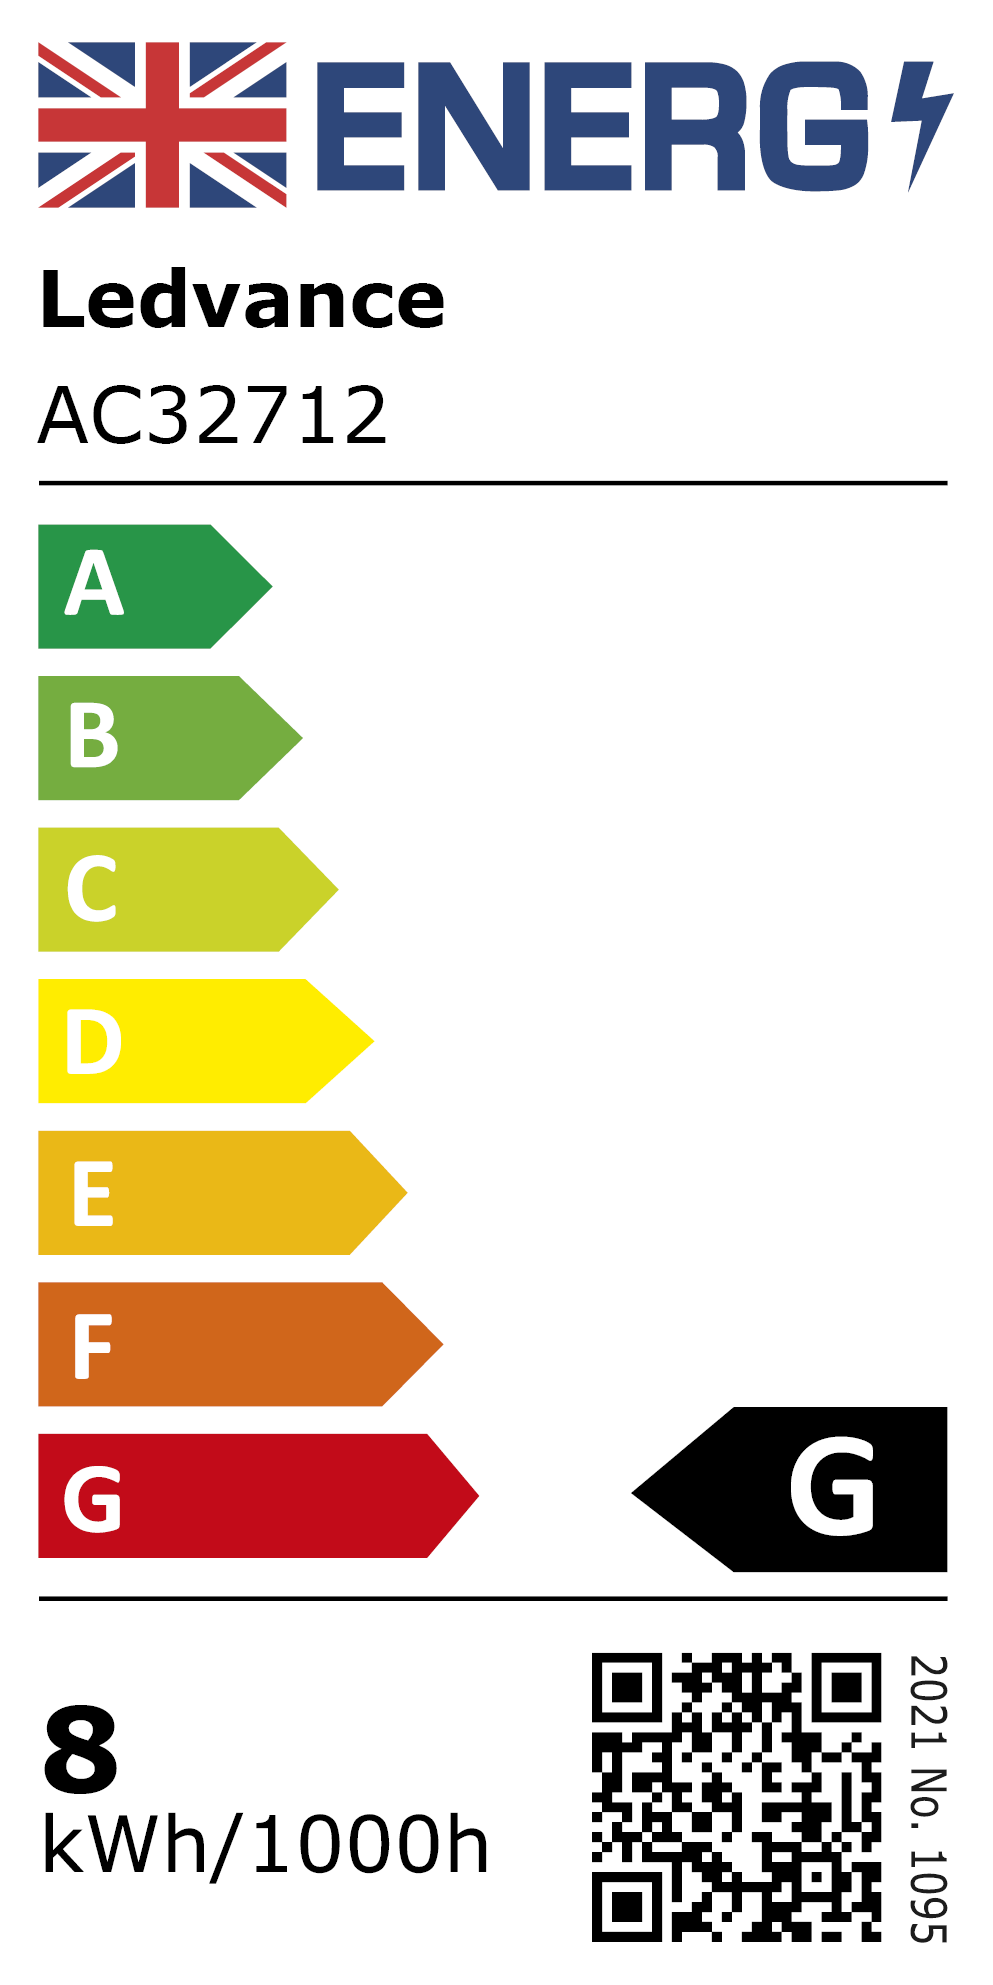 New 2021 Energy Rating Label: MPN AC32712